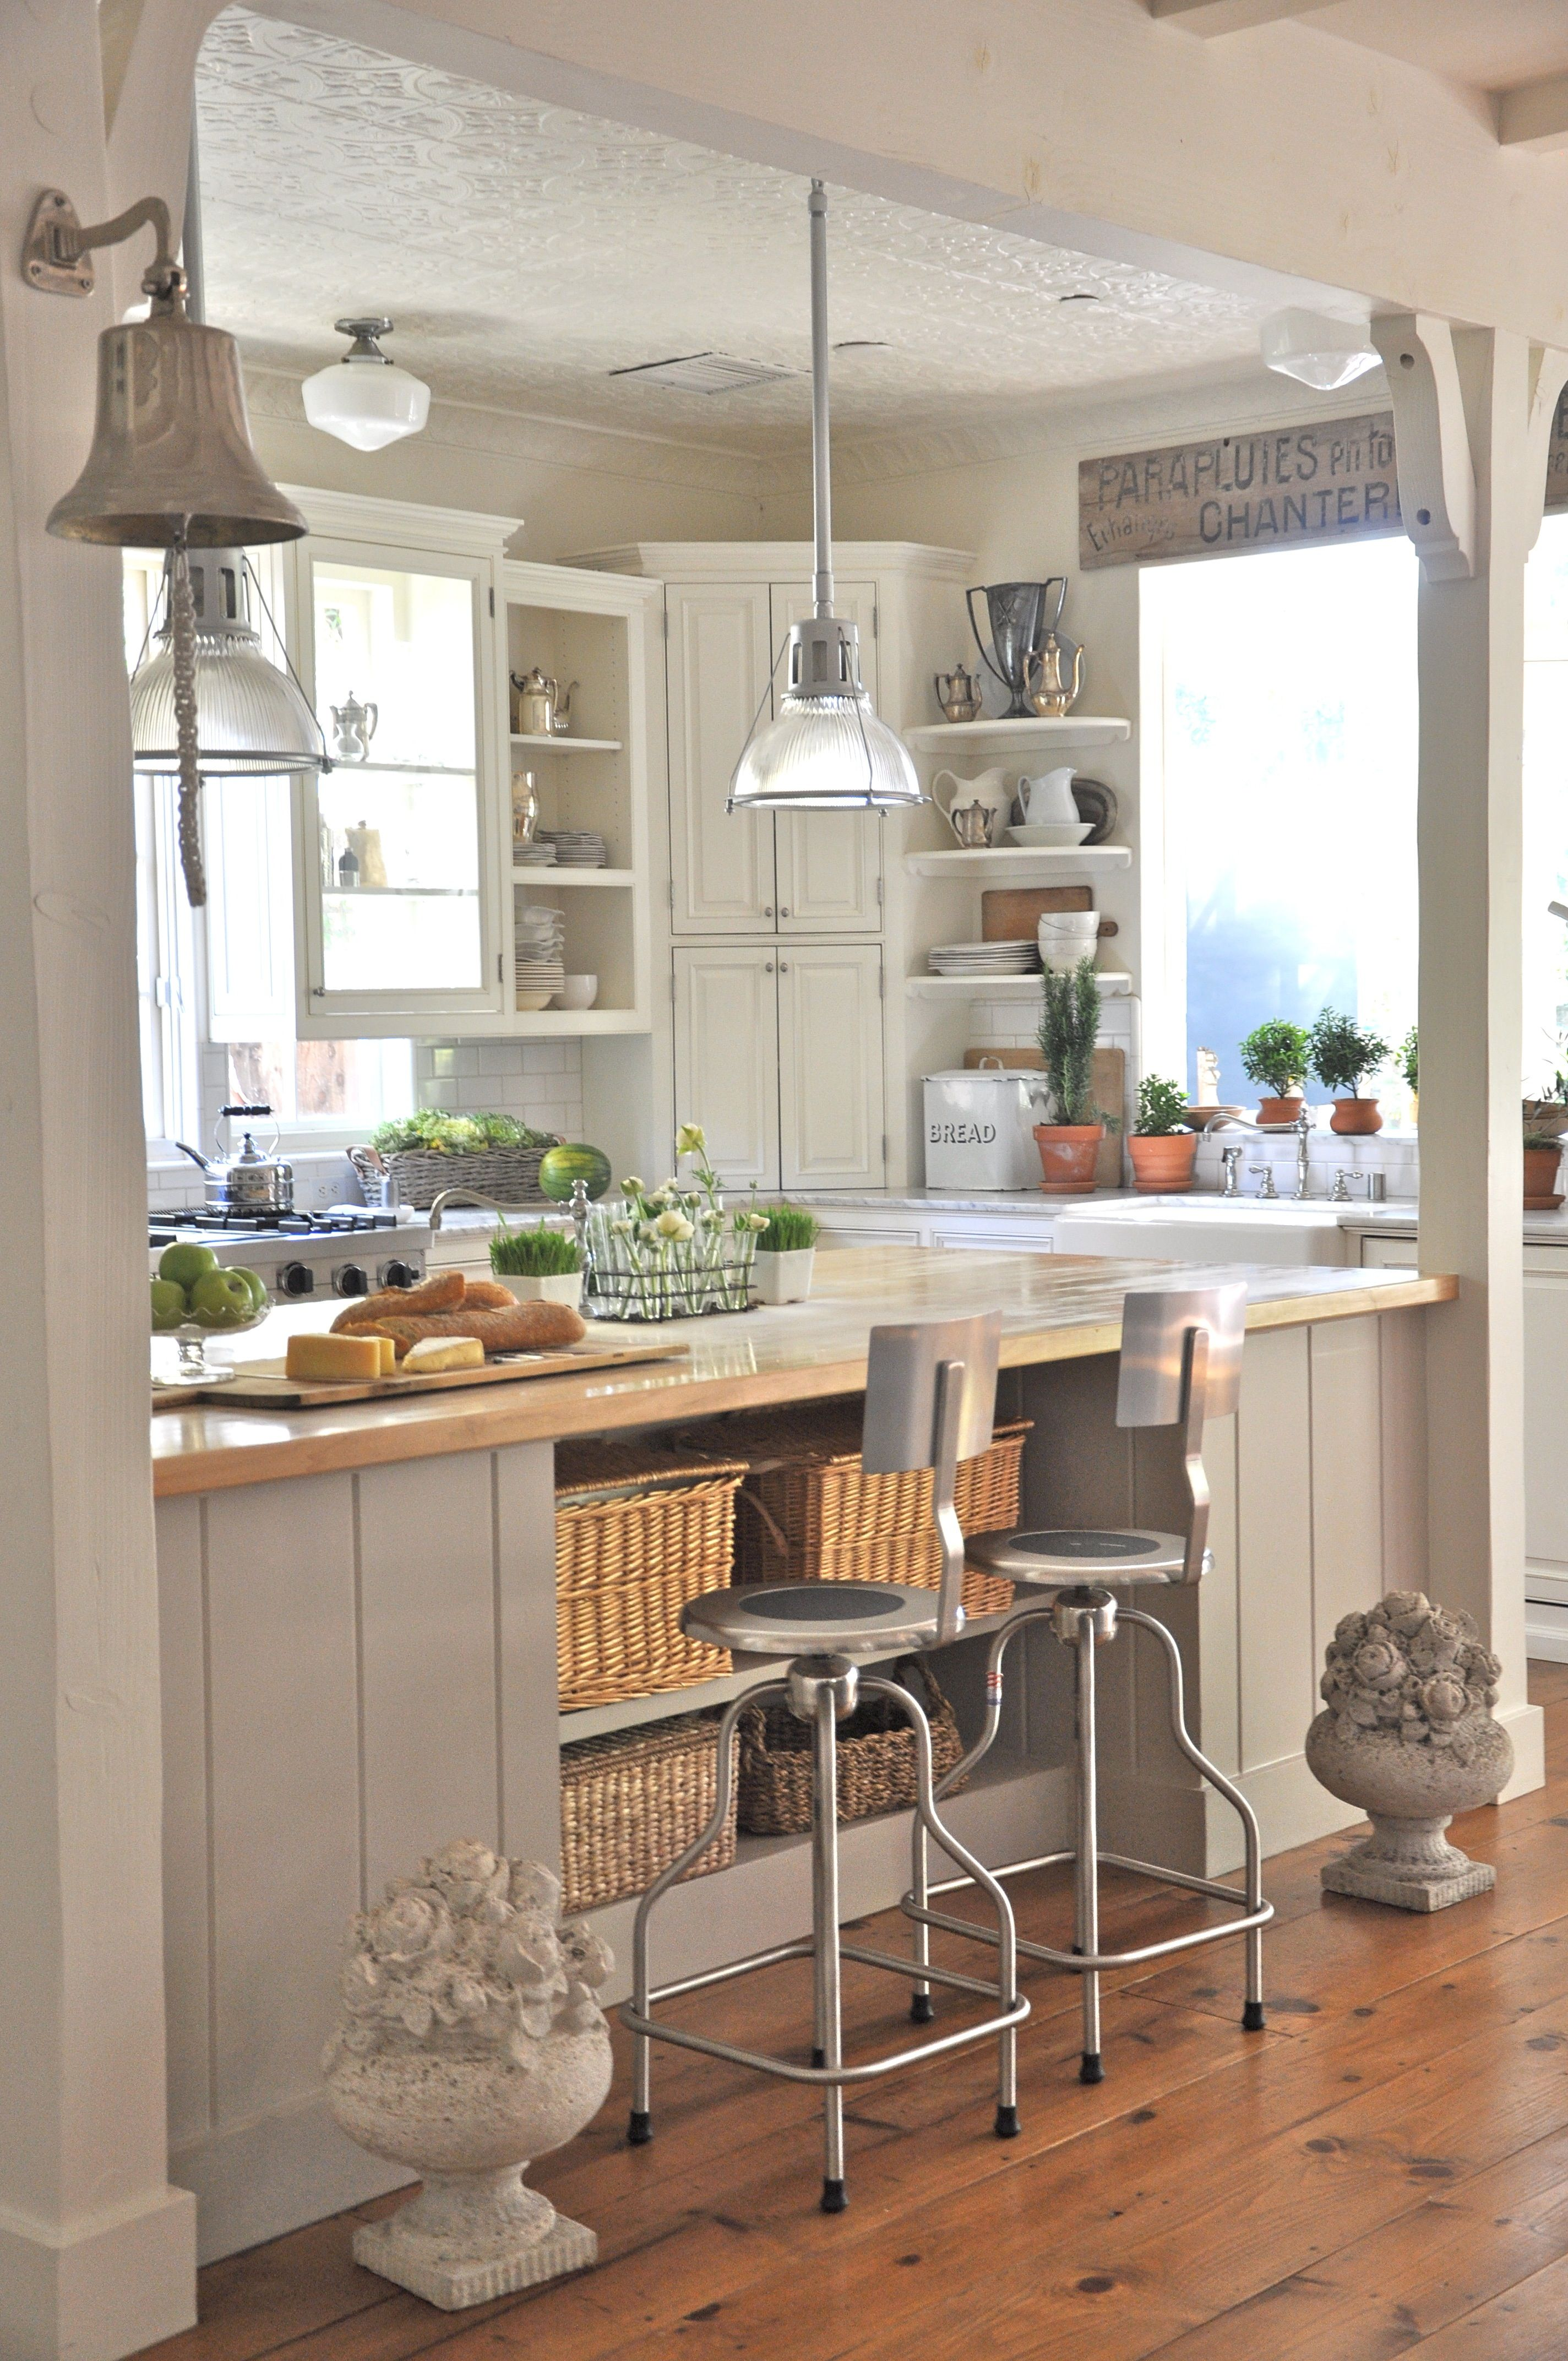 Hers Design With A Feminine Touch Shabby Chic Kitchen Decor